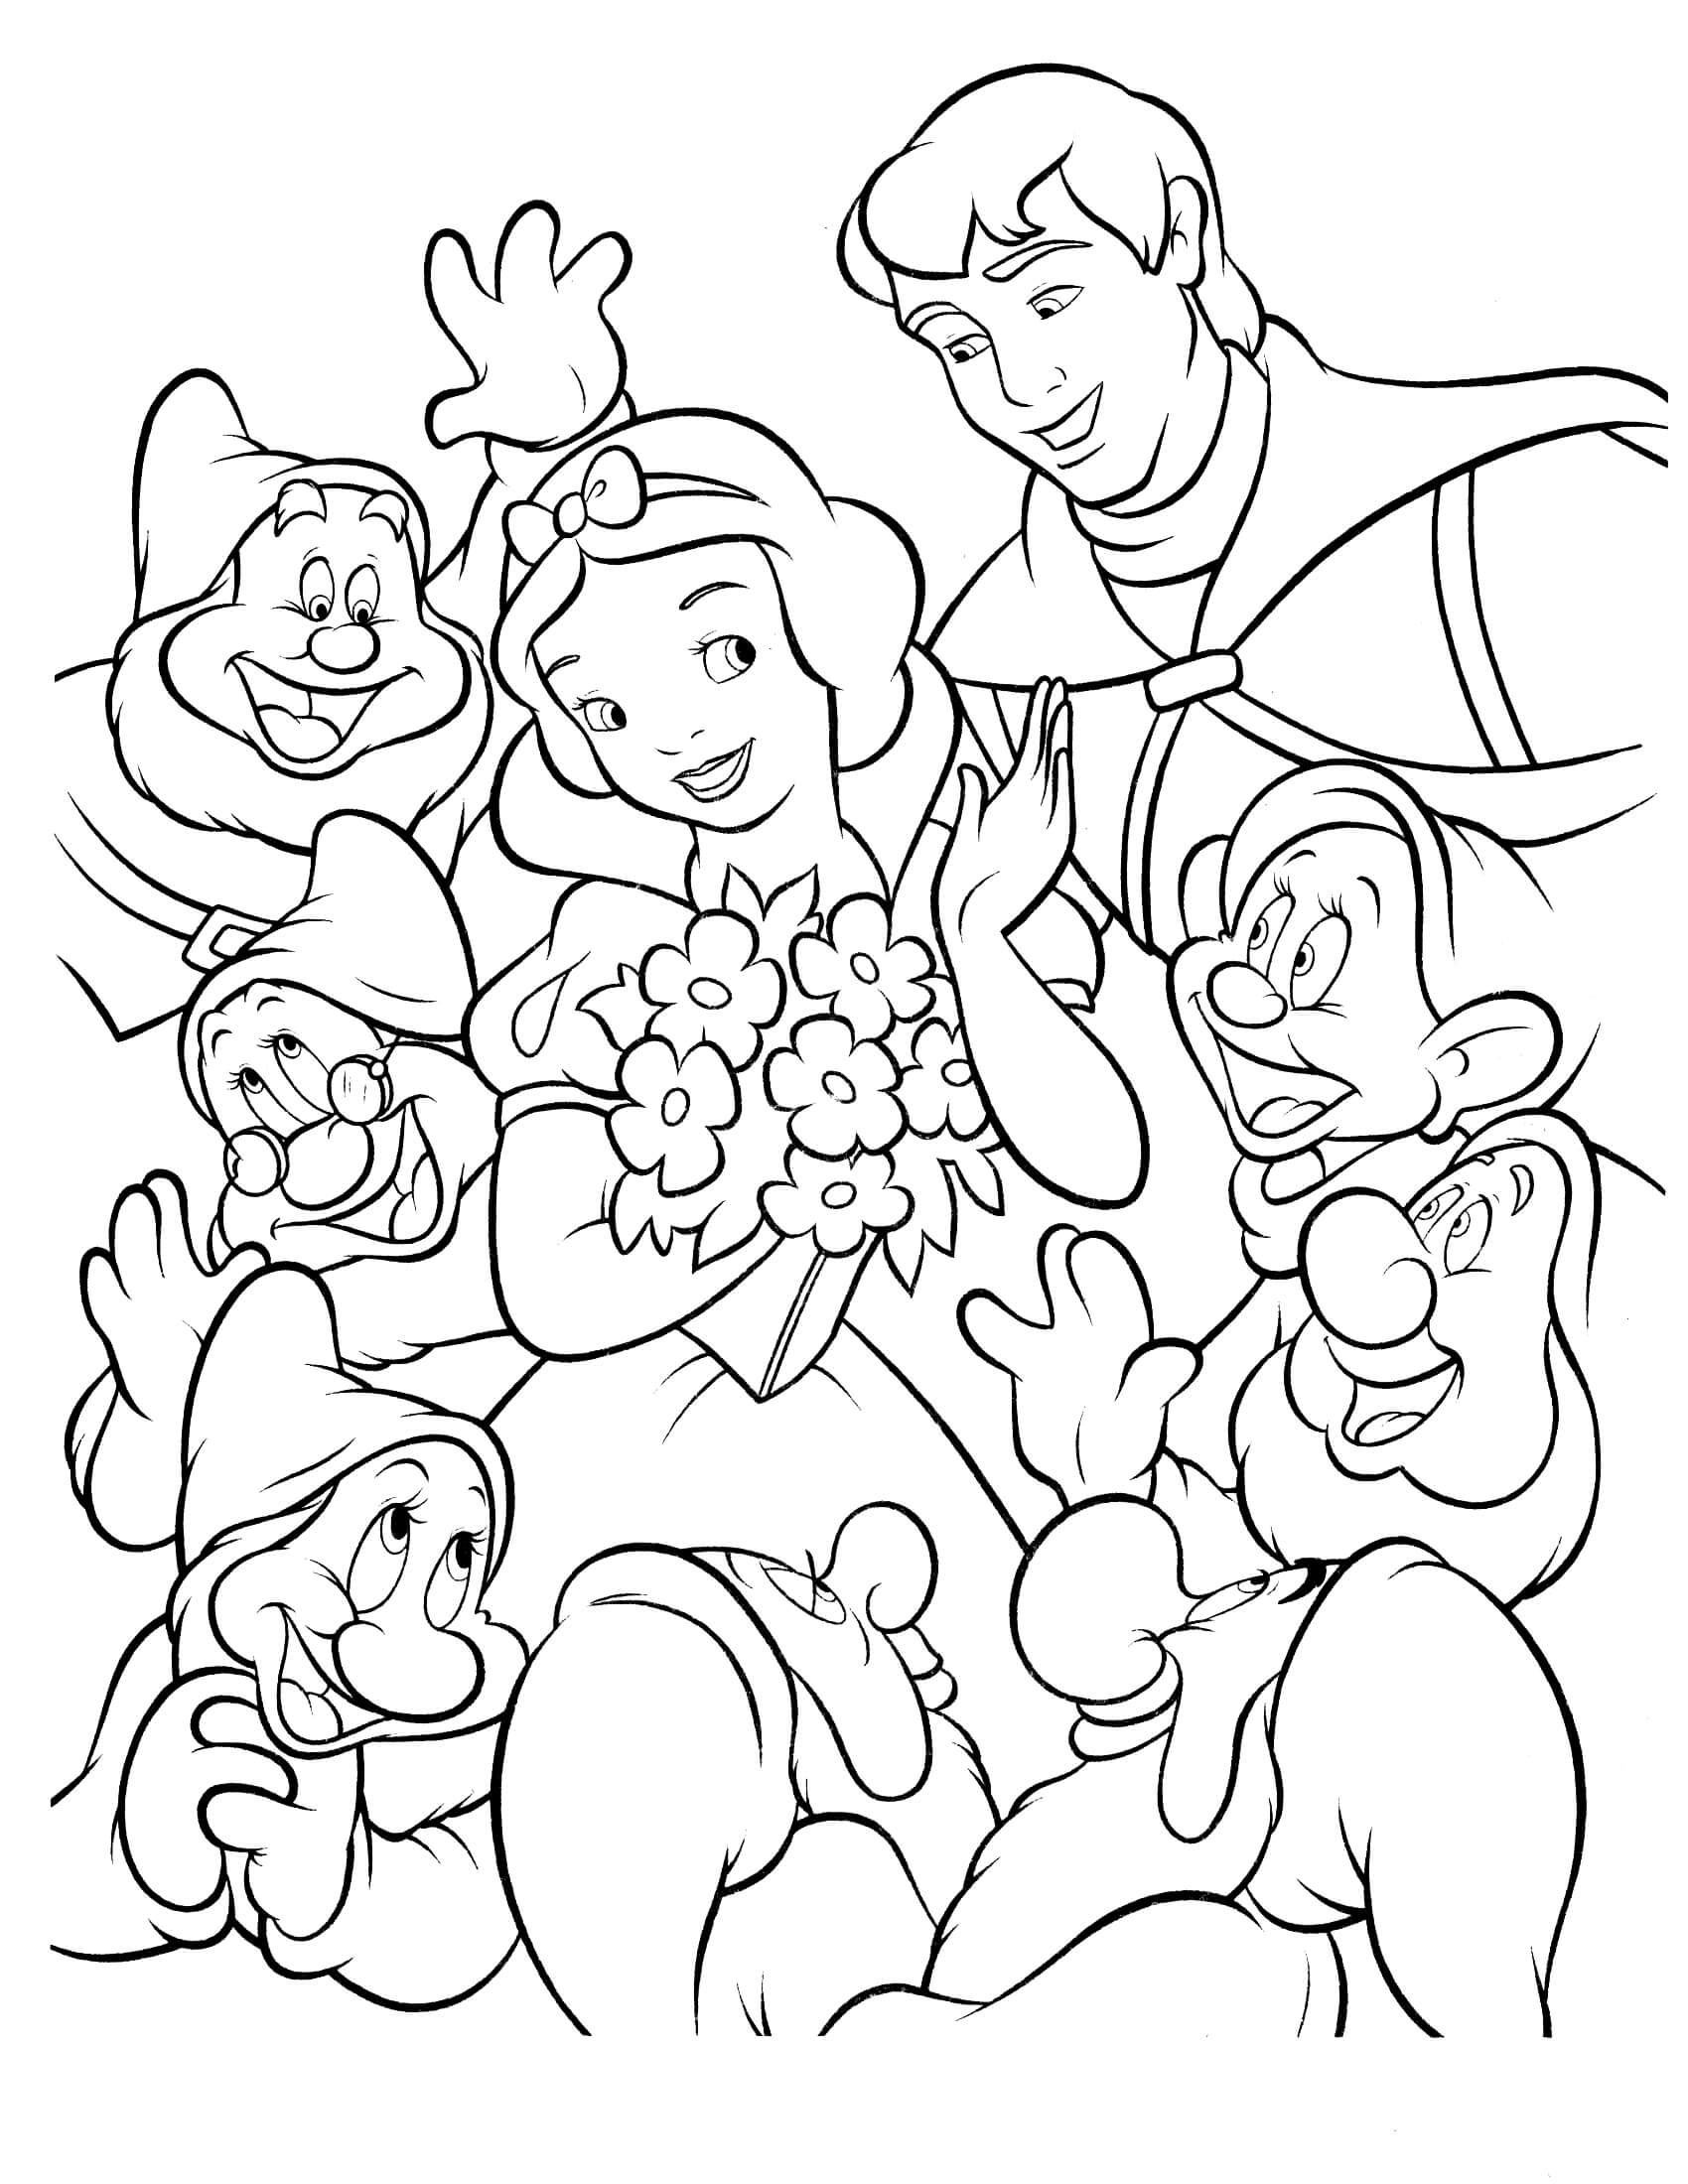 Snow White Coloring Pages Best Coloring Pages For Kids